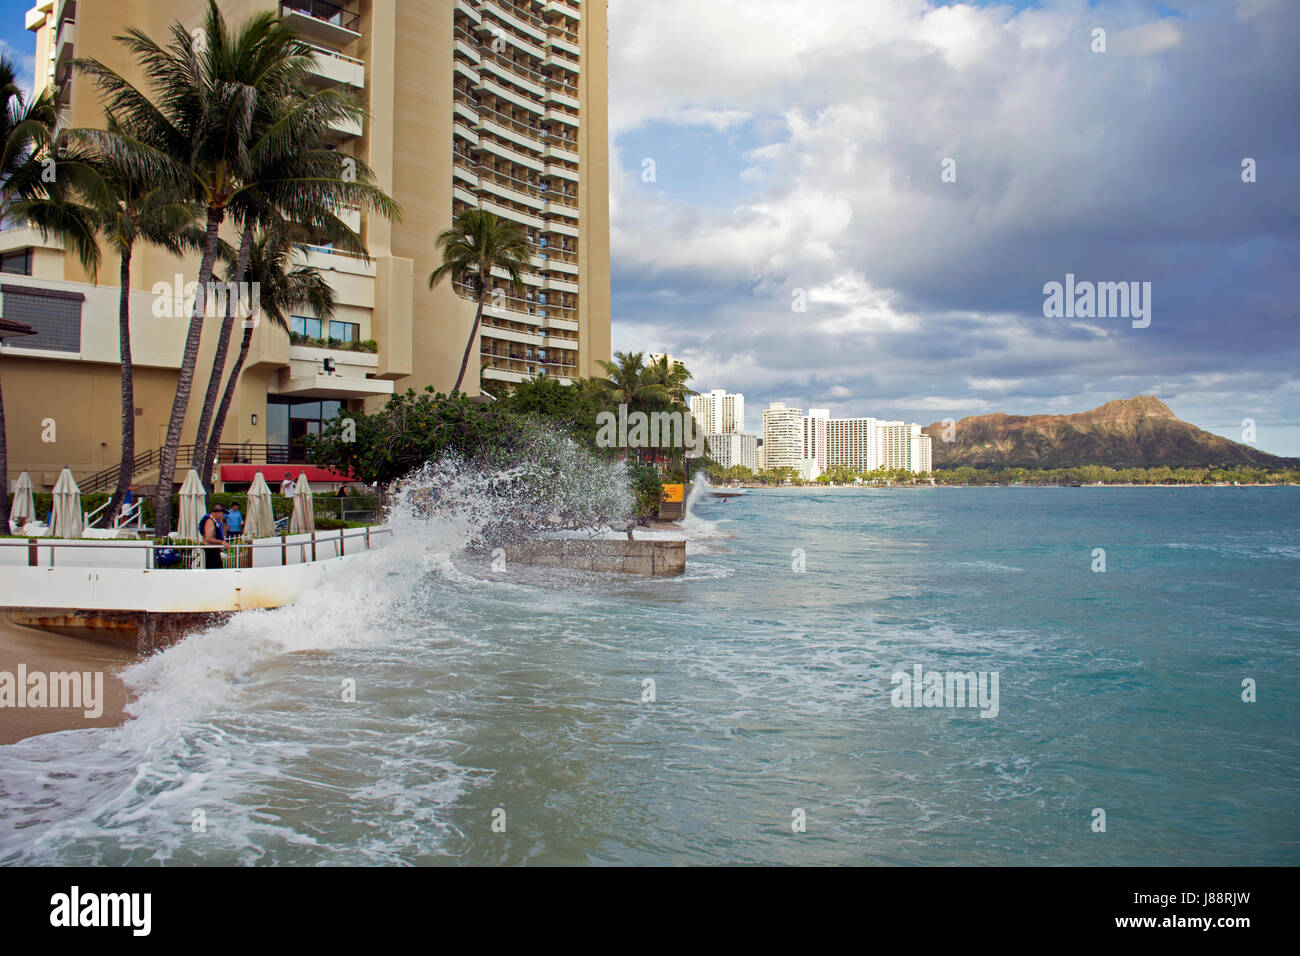 Record High Tides Or King Tides In Waikiki Beach In May